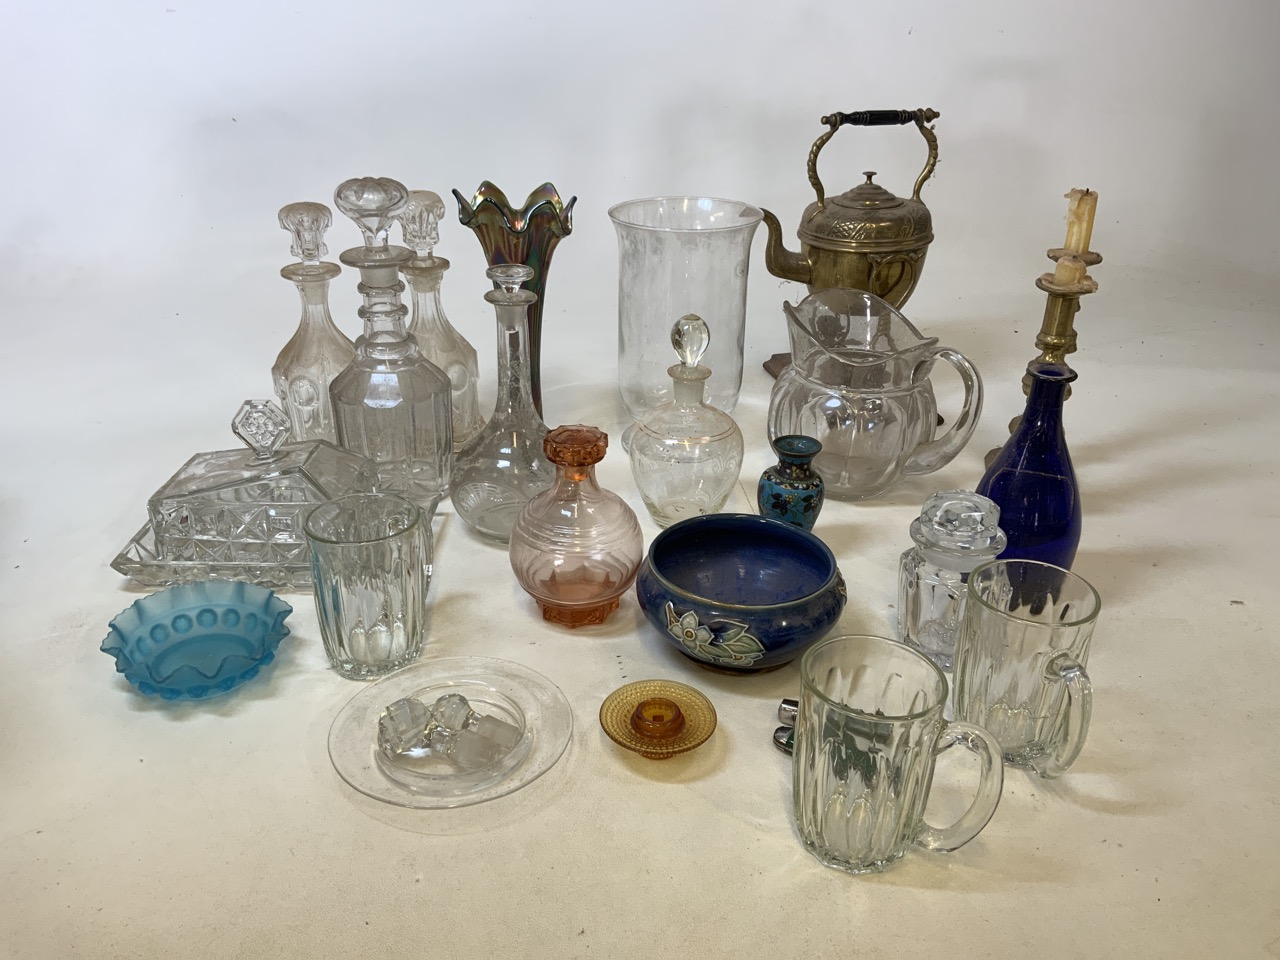 A mixed collection of glass, metal wear and ceramics. To include a brass kettle and a pair of